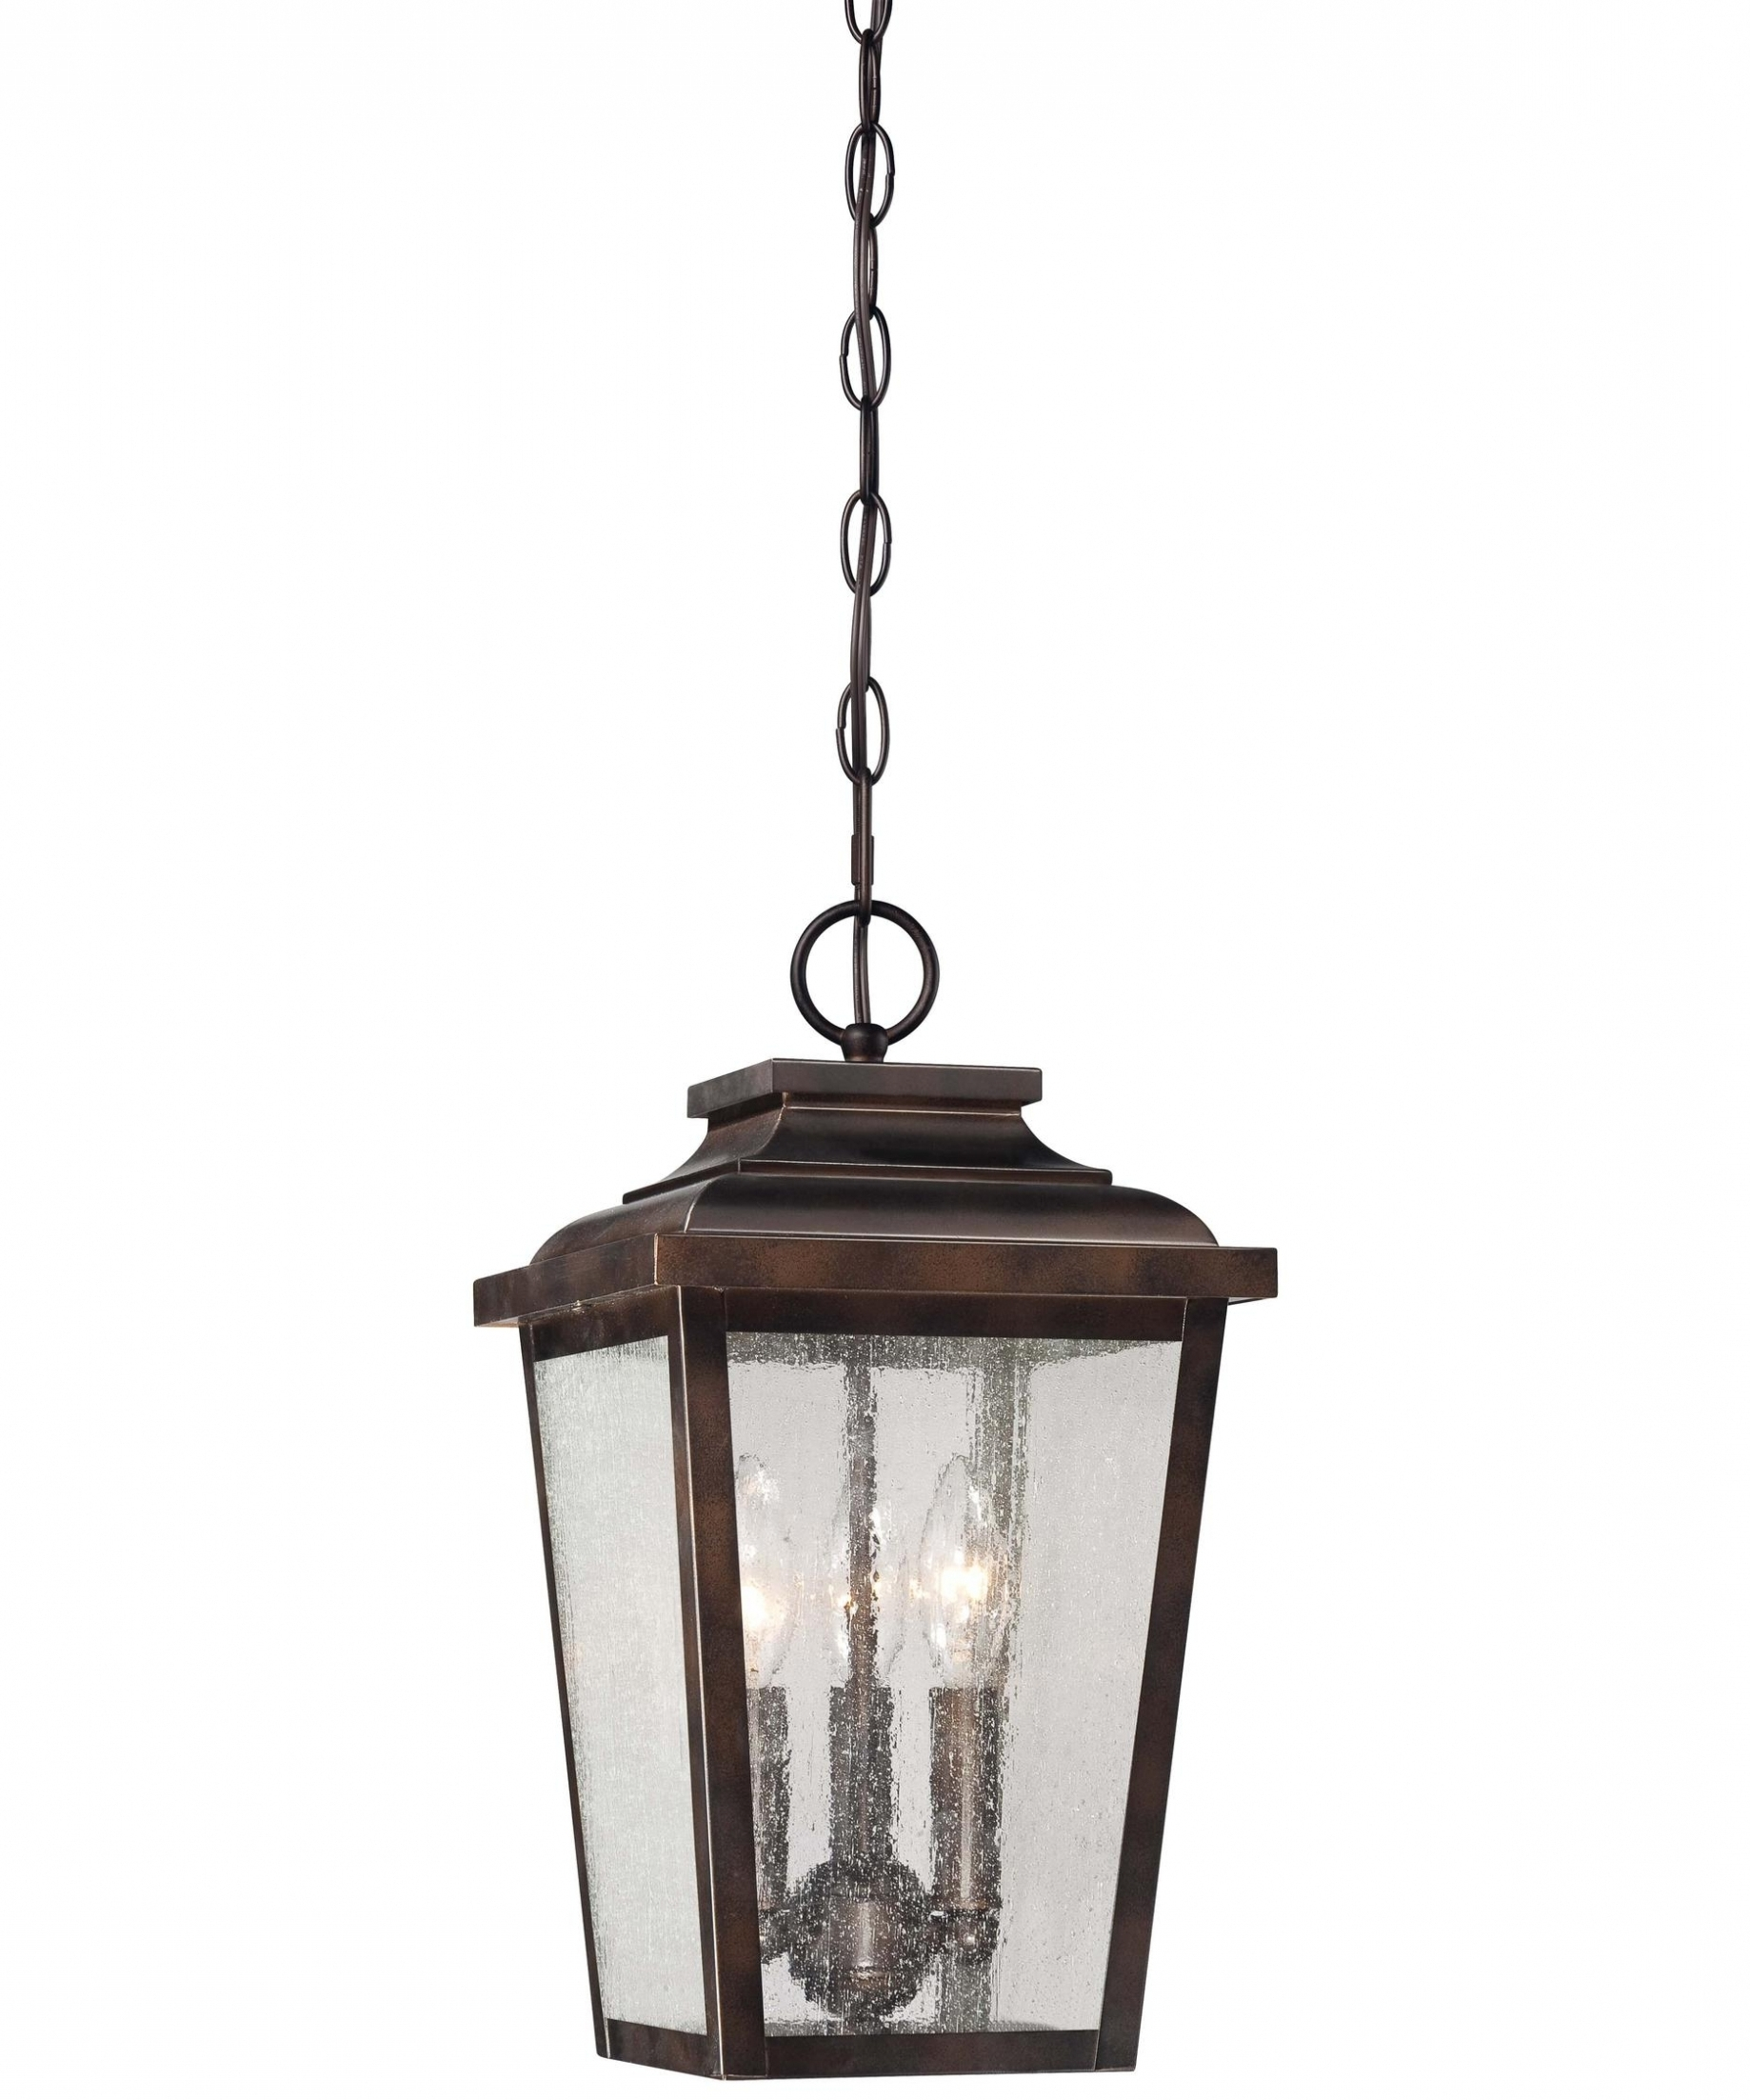 Hanging Porch Hinkley Lighting Intended For Most Up To Date Lamp & Lighting: Hanging Outdoor Porch Light Fixtures • Outdoor (View 6 of 20)